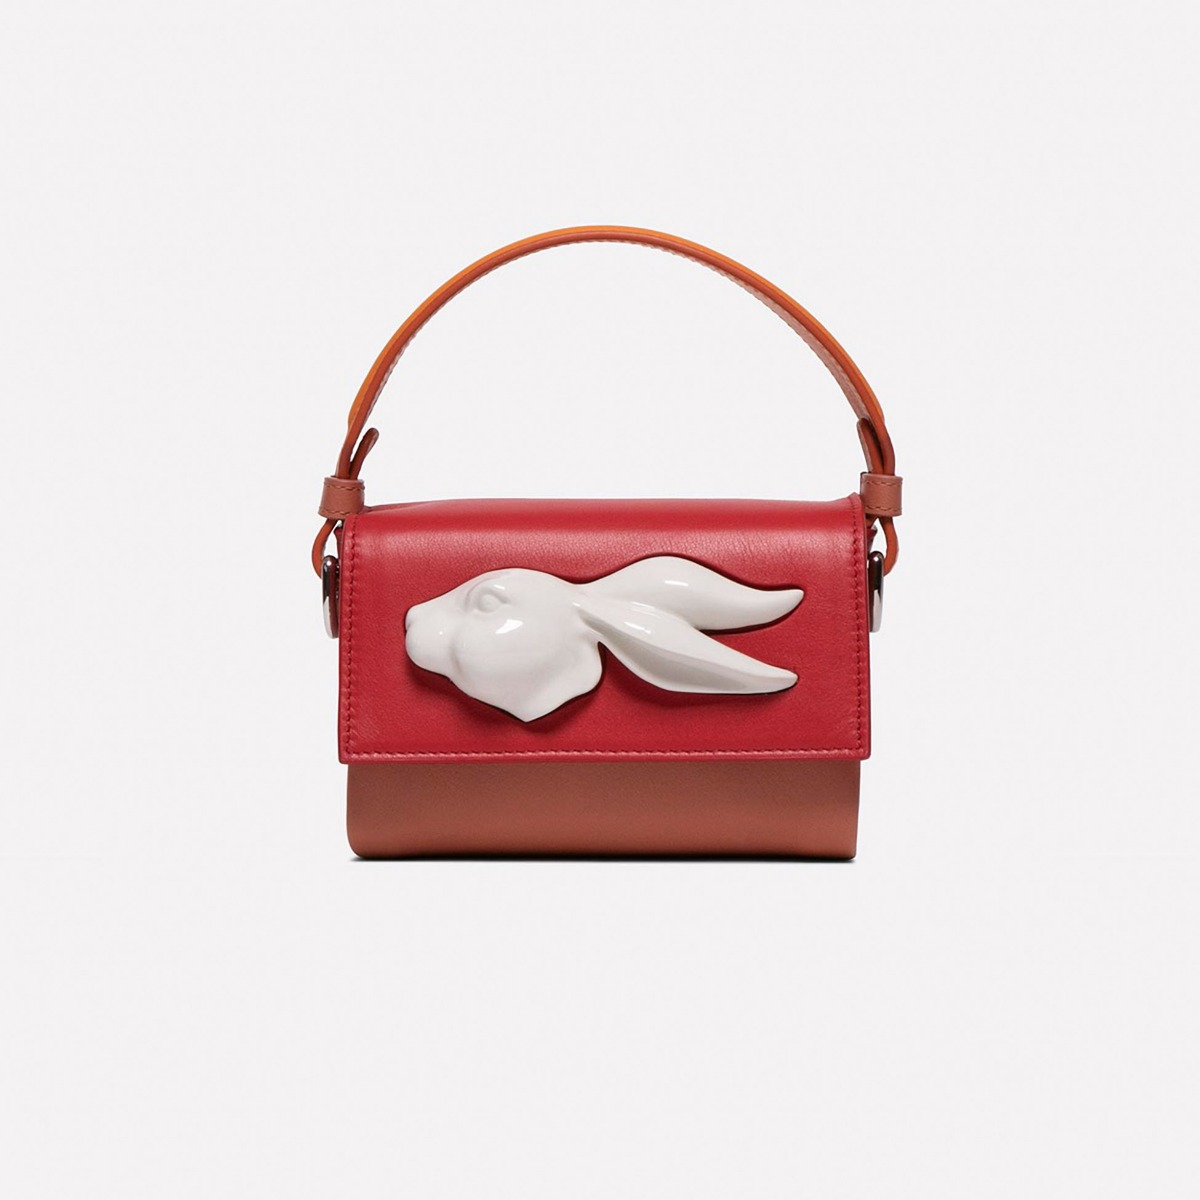 Flapmini Rabbit head handbag